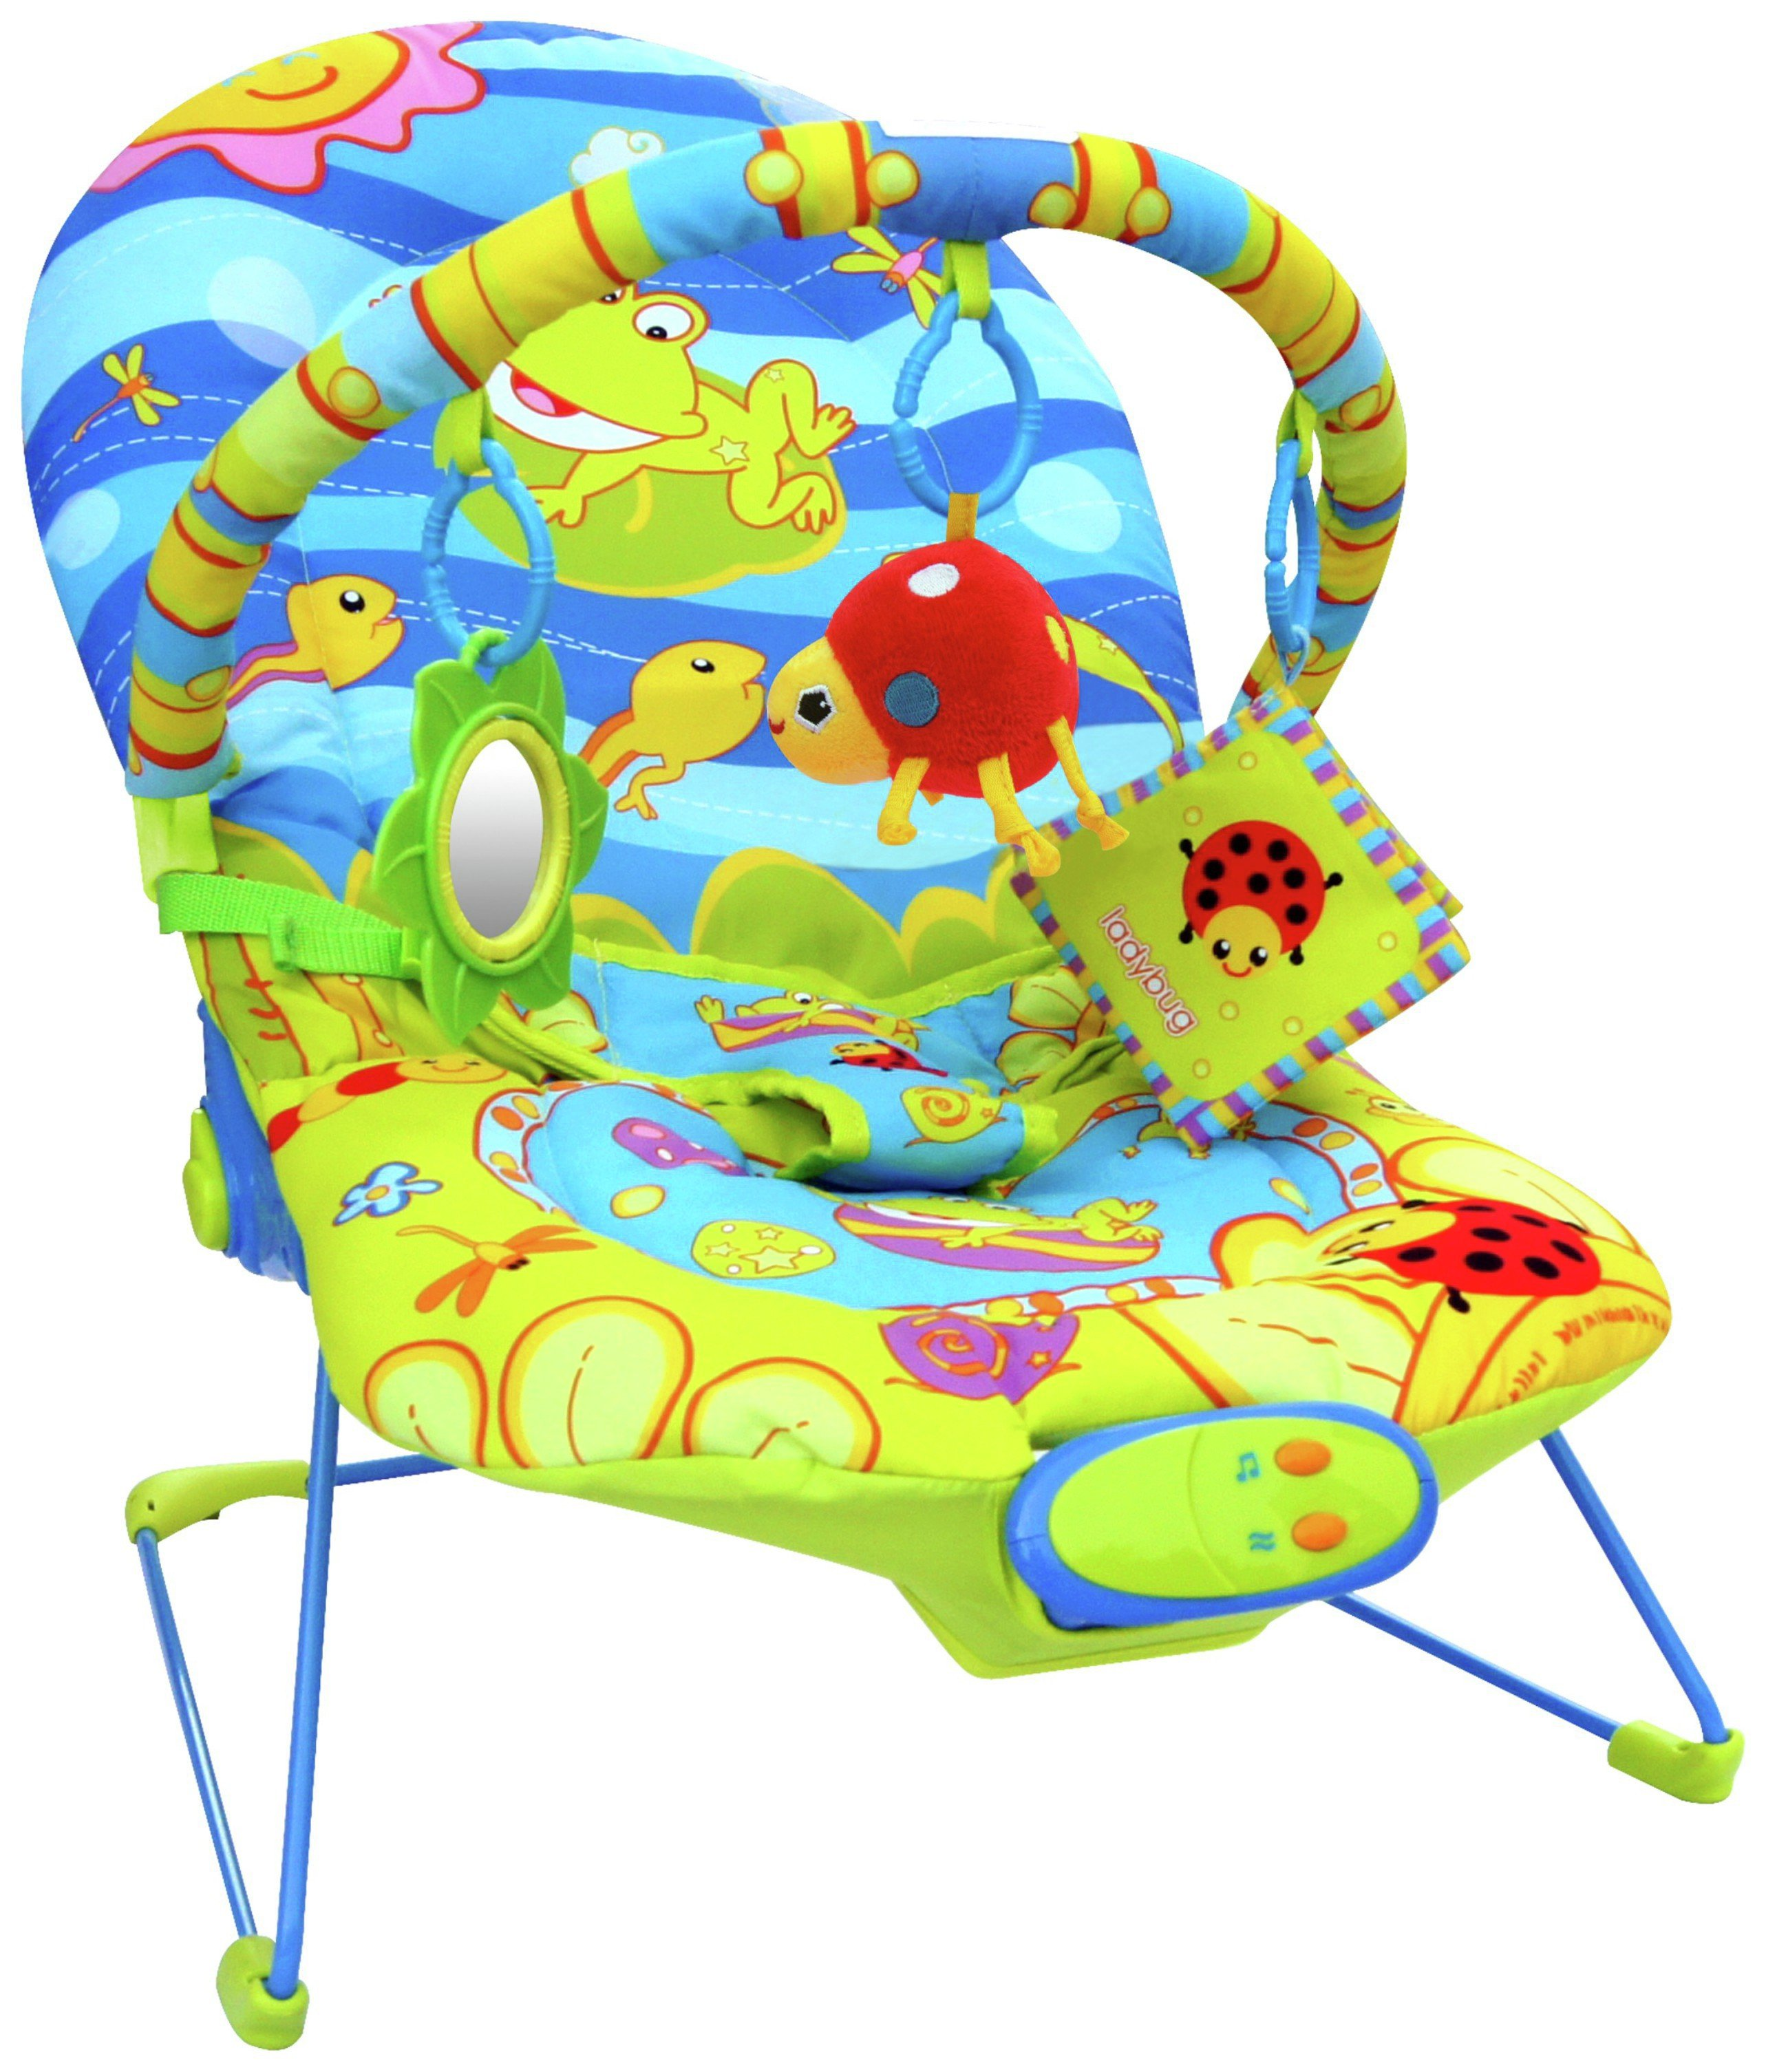 Image of BeBe Style Ocean World Bouncer With Vibration Music.